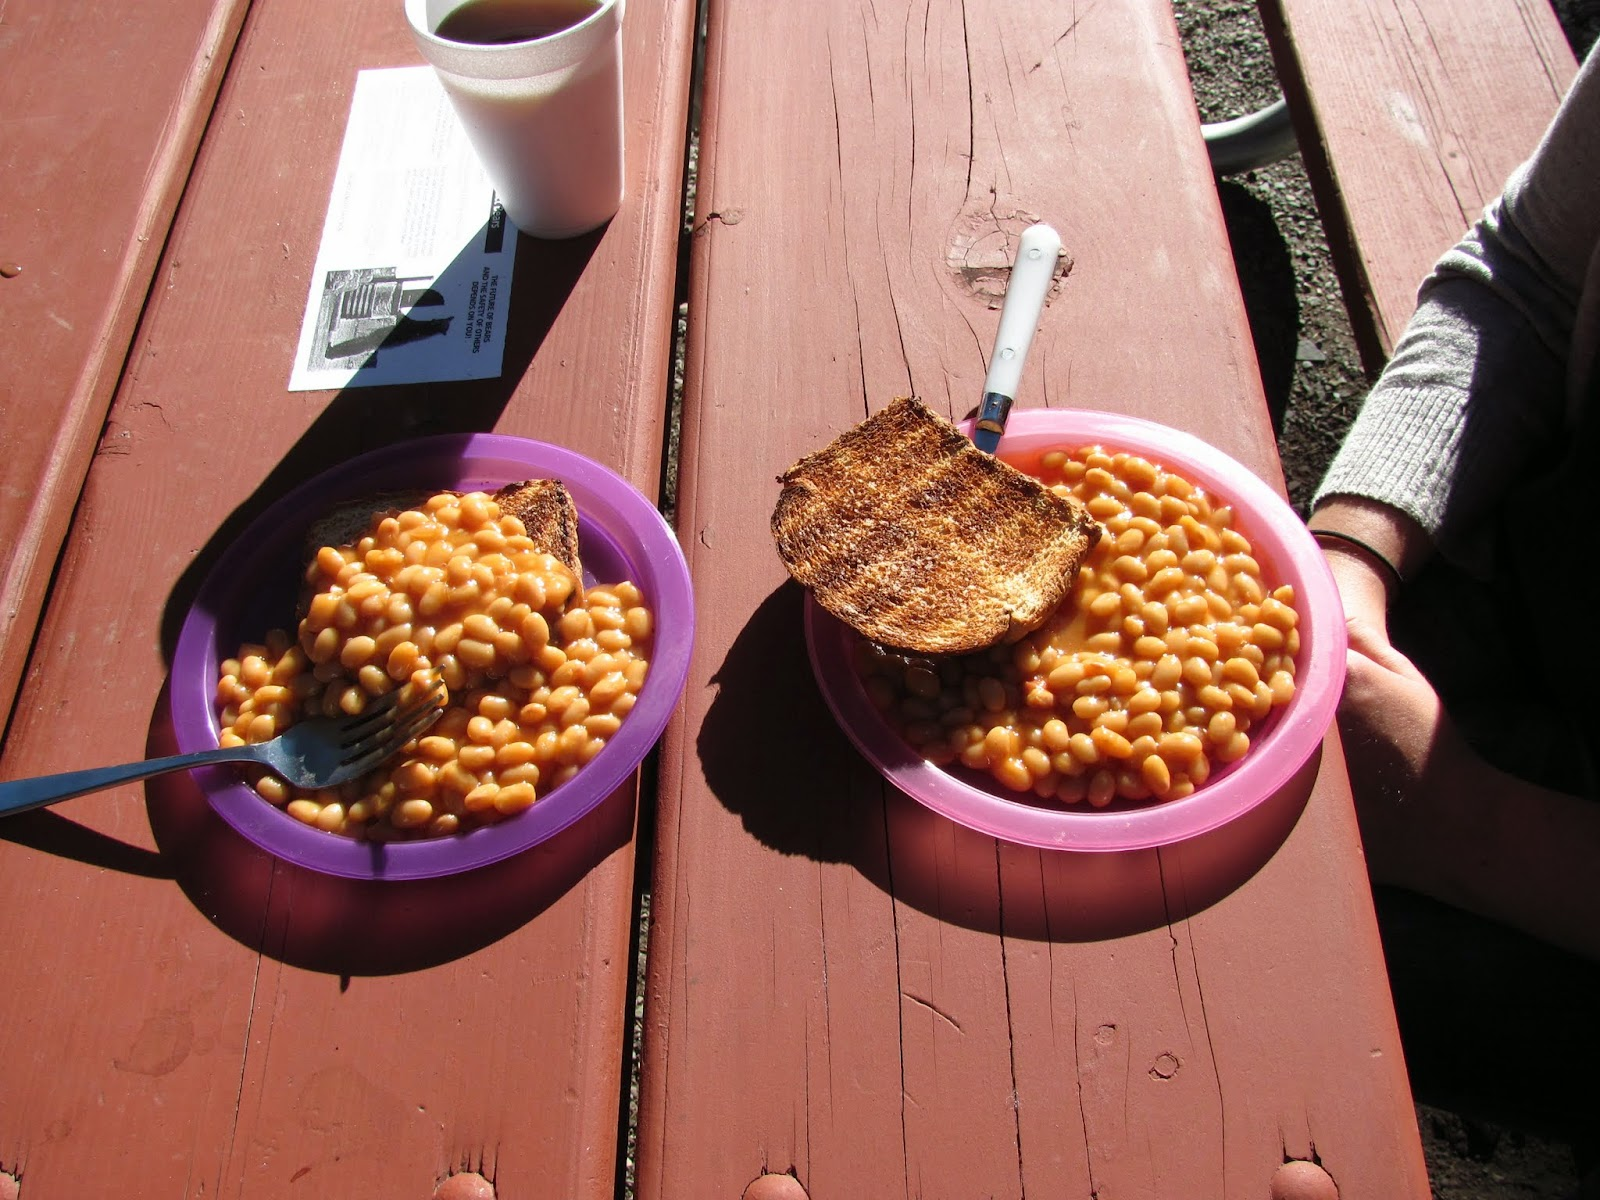 Beans and toast for breakfast at Two Medicine in Glacier National Park in Montana